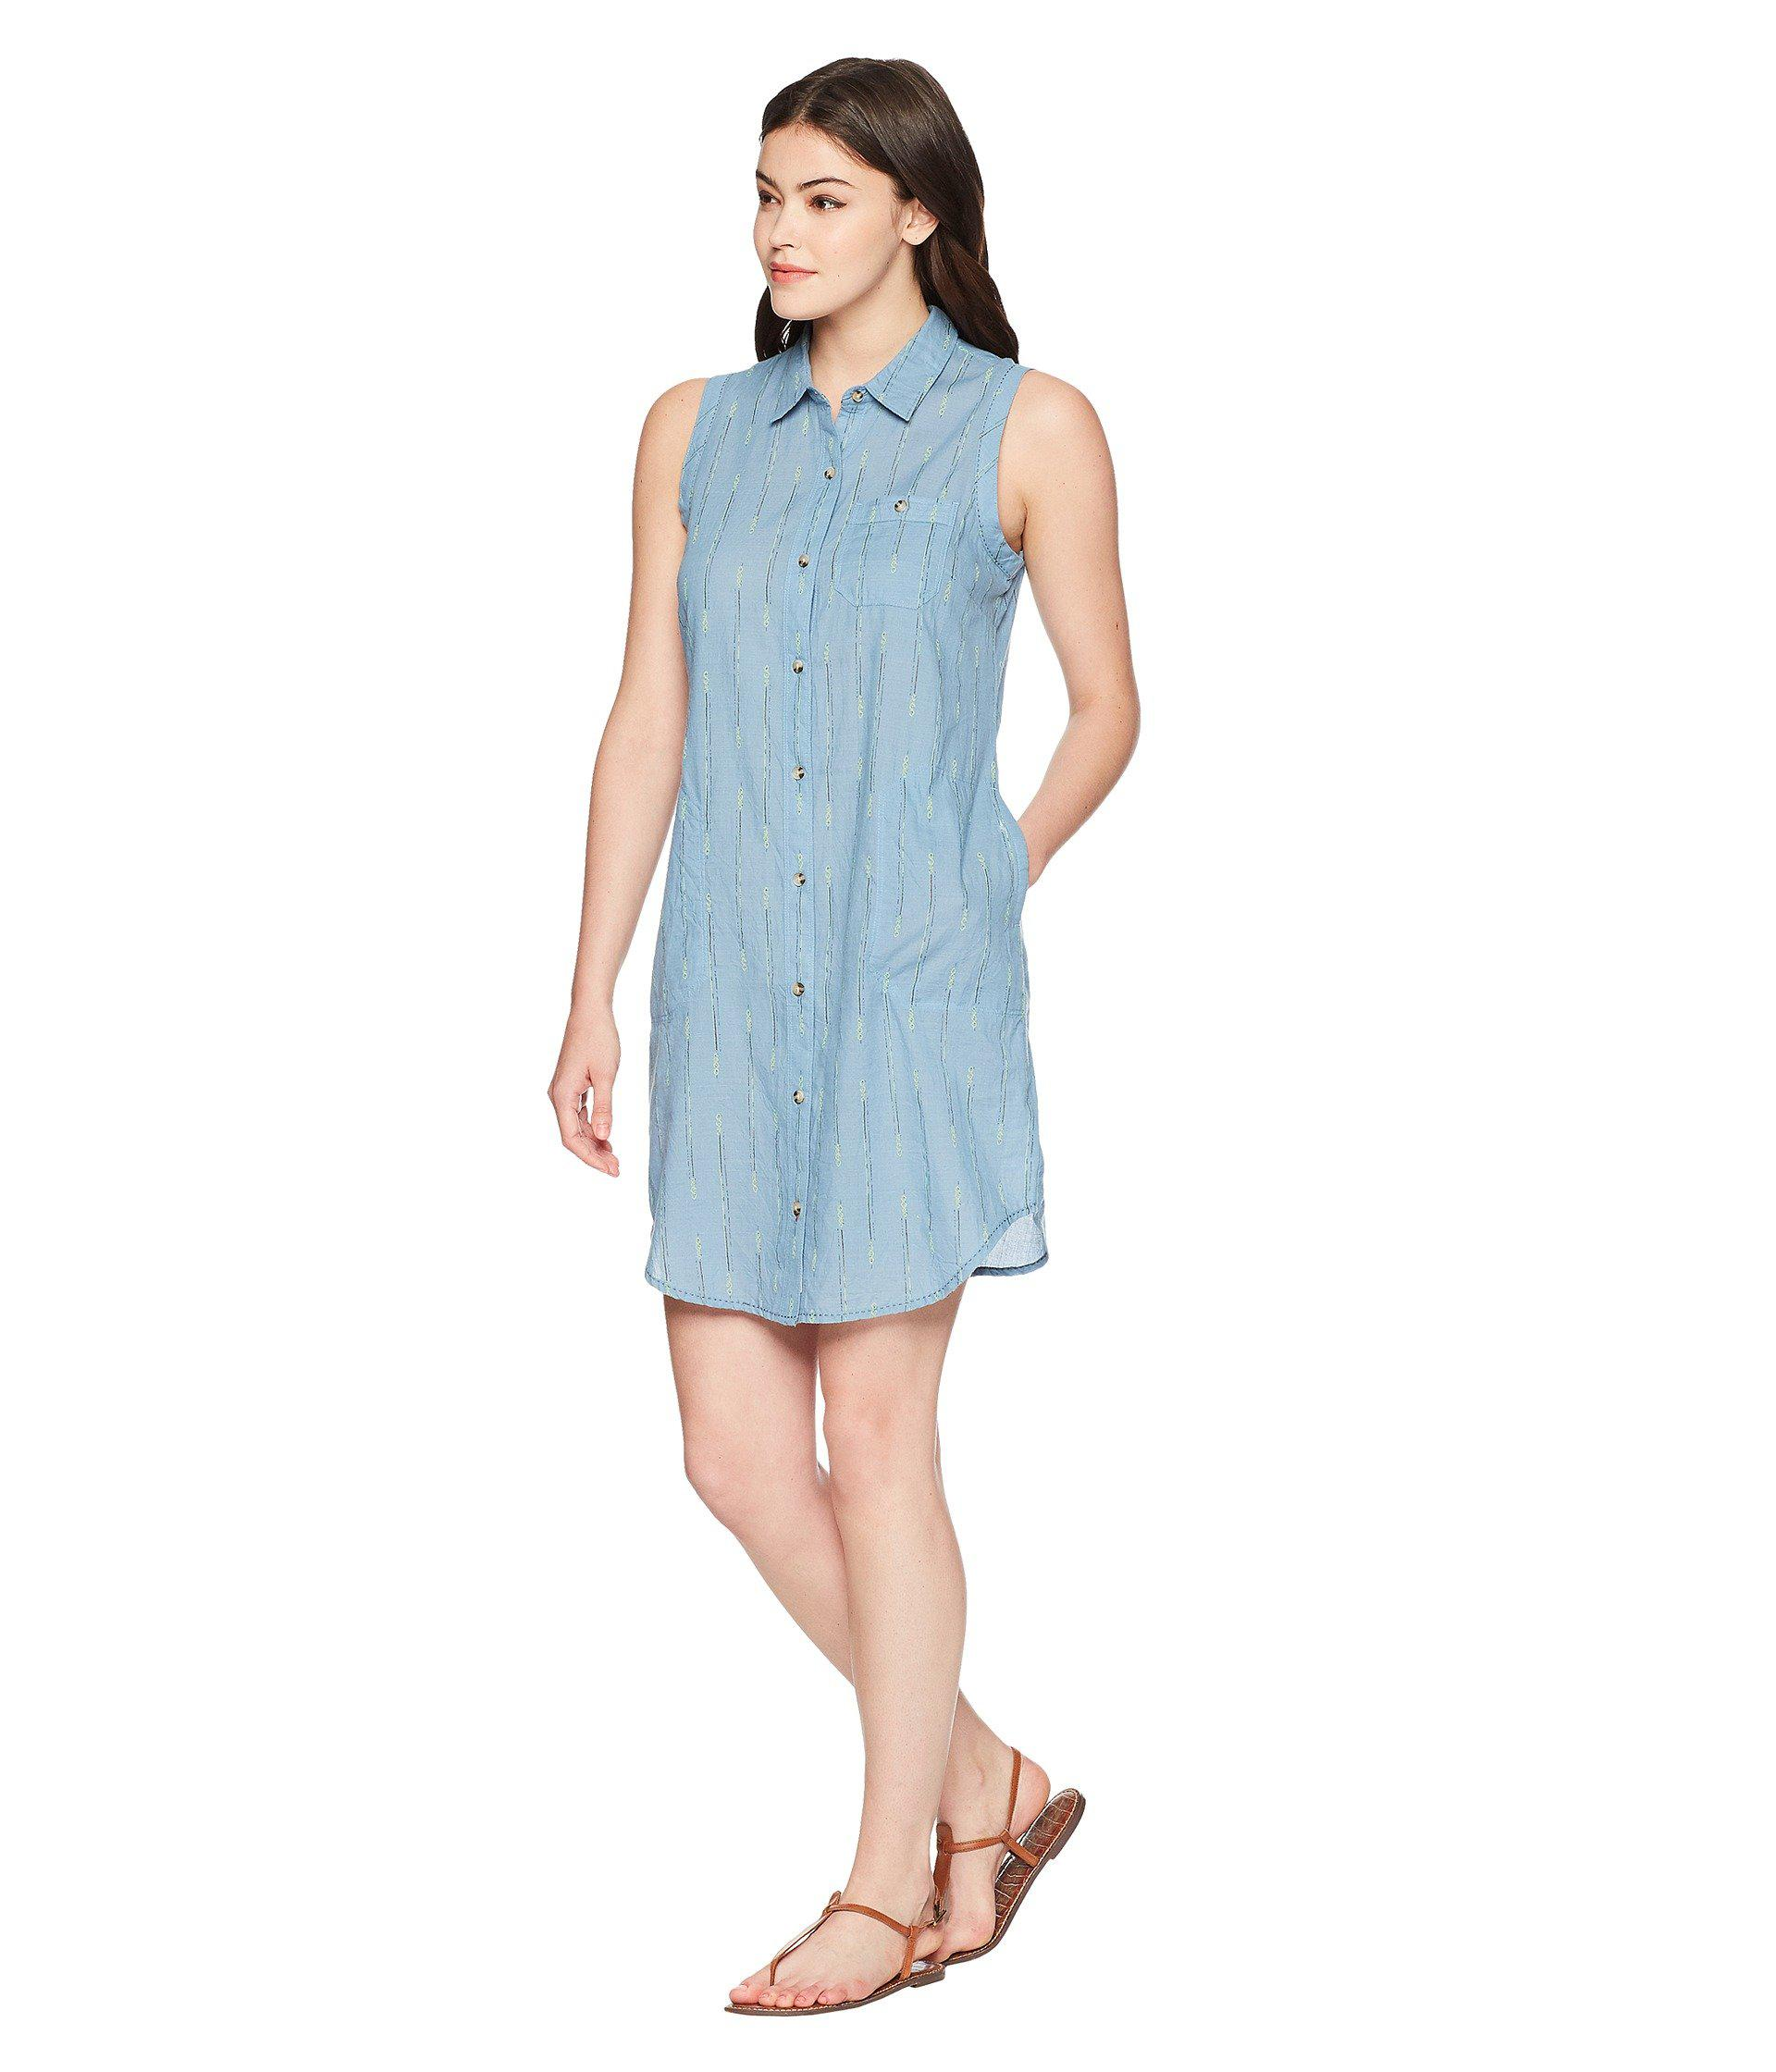 e78c3b46749 Toad&Co Indigo Ridge Sleeveless Dress in Blue - Lyst